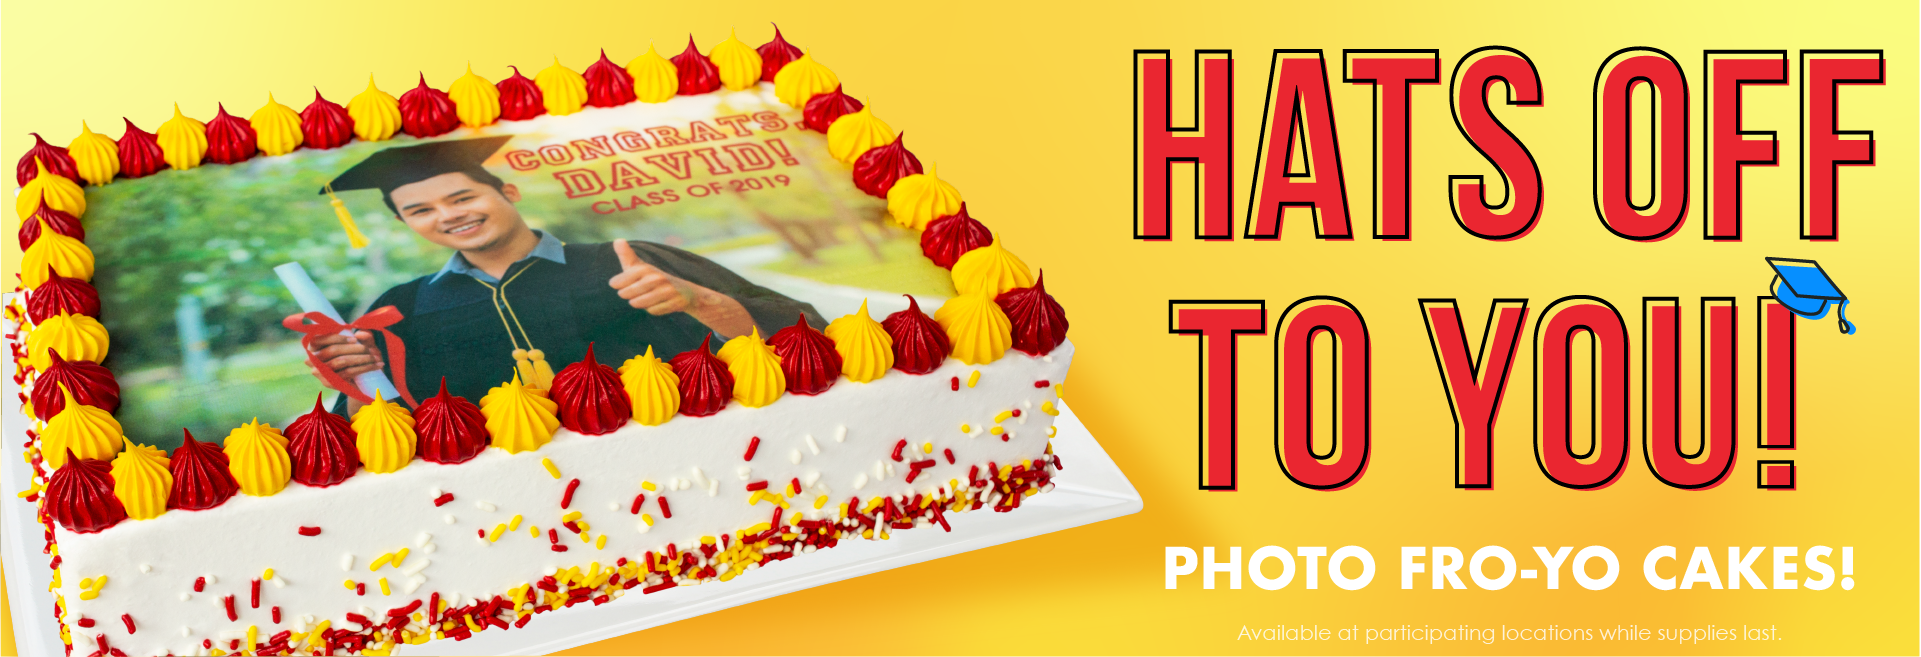 Graduation Celebration Cake. Say con-grad-ulations with our new Graduation Celebration Cake! Bring the YUMM to your grad party with one of our new froyo cakes! It's the smart choice.